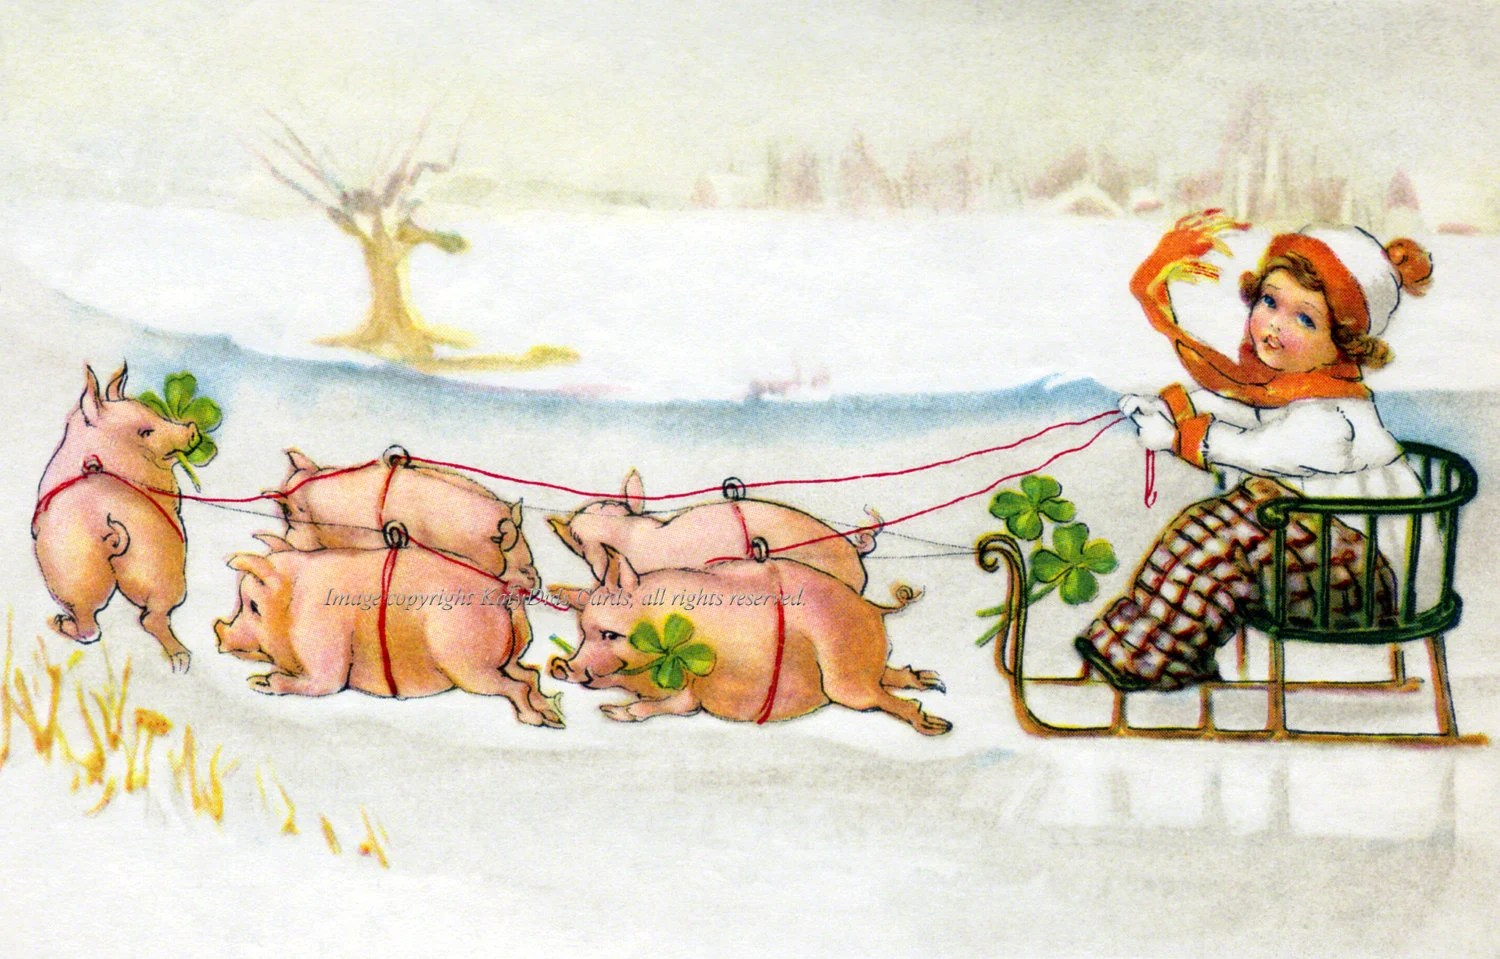 New Year Card Pigs Pull Sled In Snow German Holiday Card